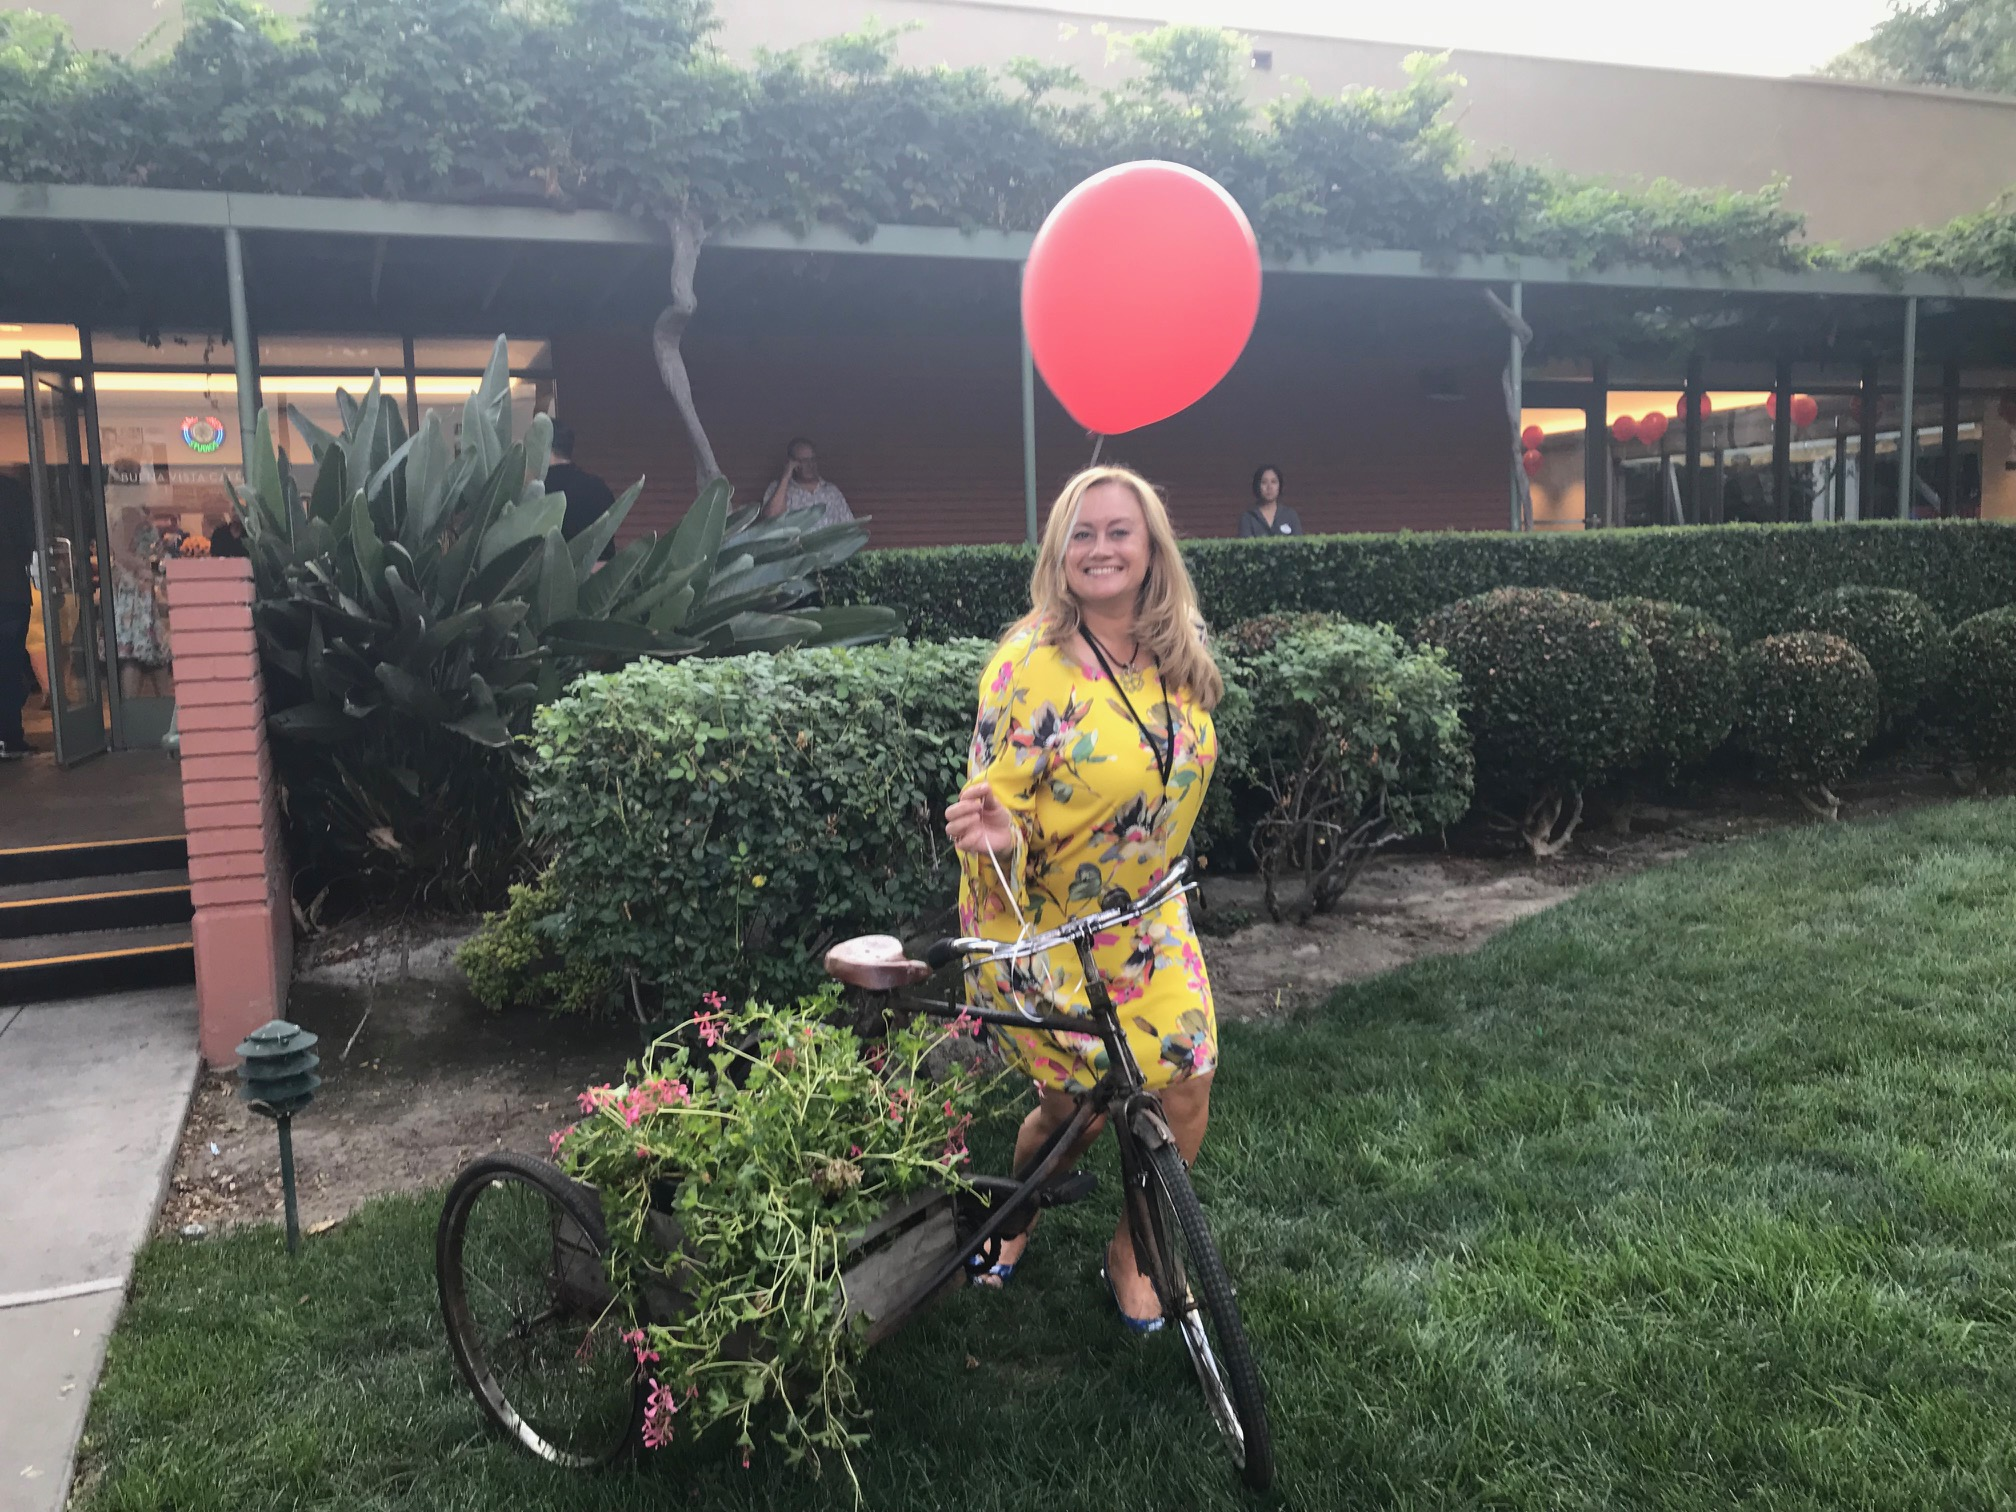 This bike is a prop reminding us about one of the scenes happening in the CHRISTOPHER ROBIN movie. Red Carpet Christopher Robin World Premiere